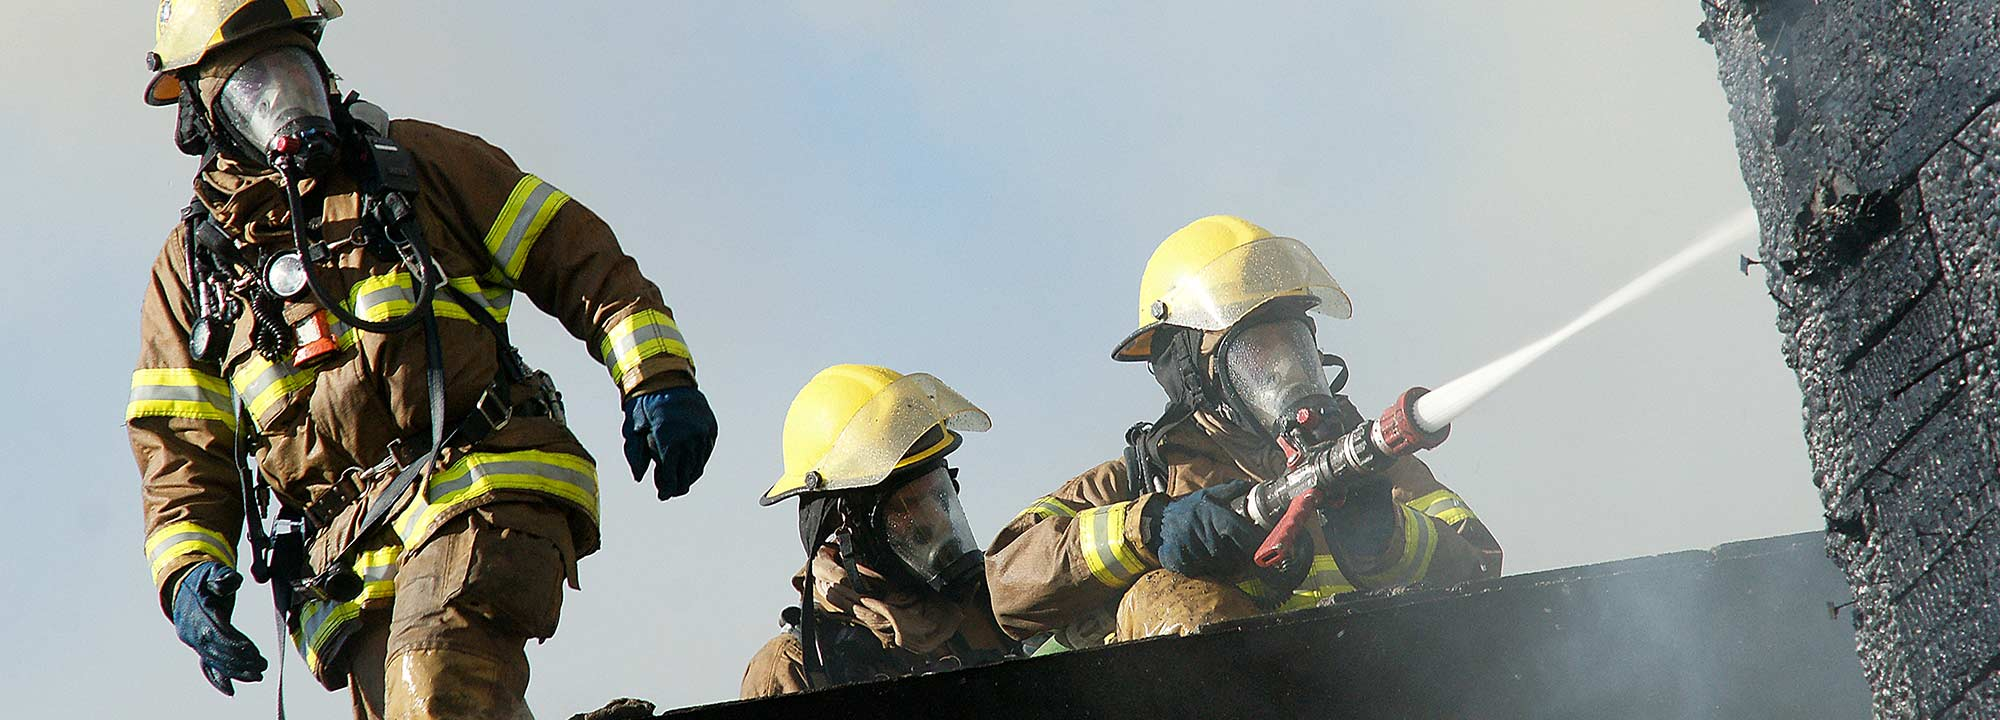 Three firefighters hose down a fire